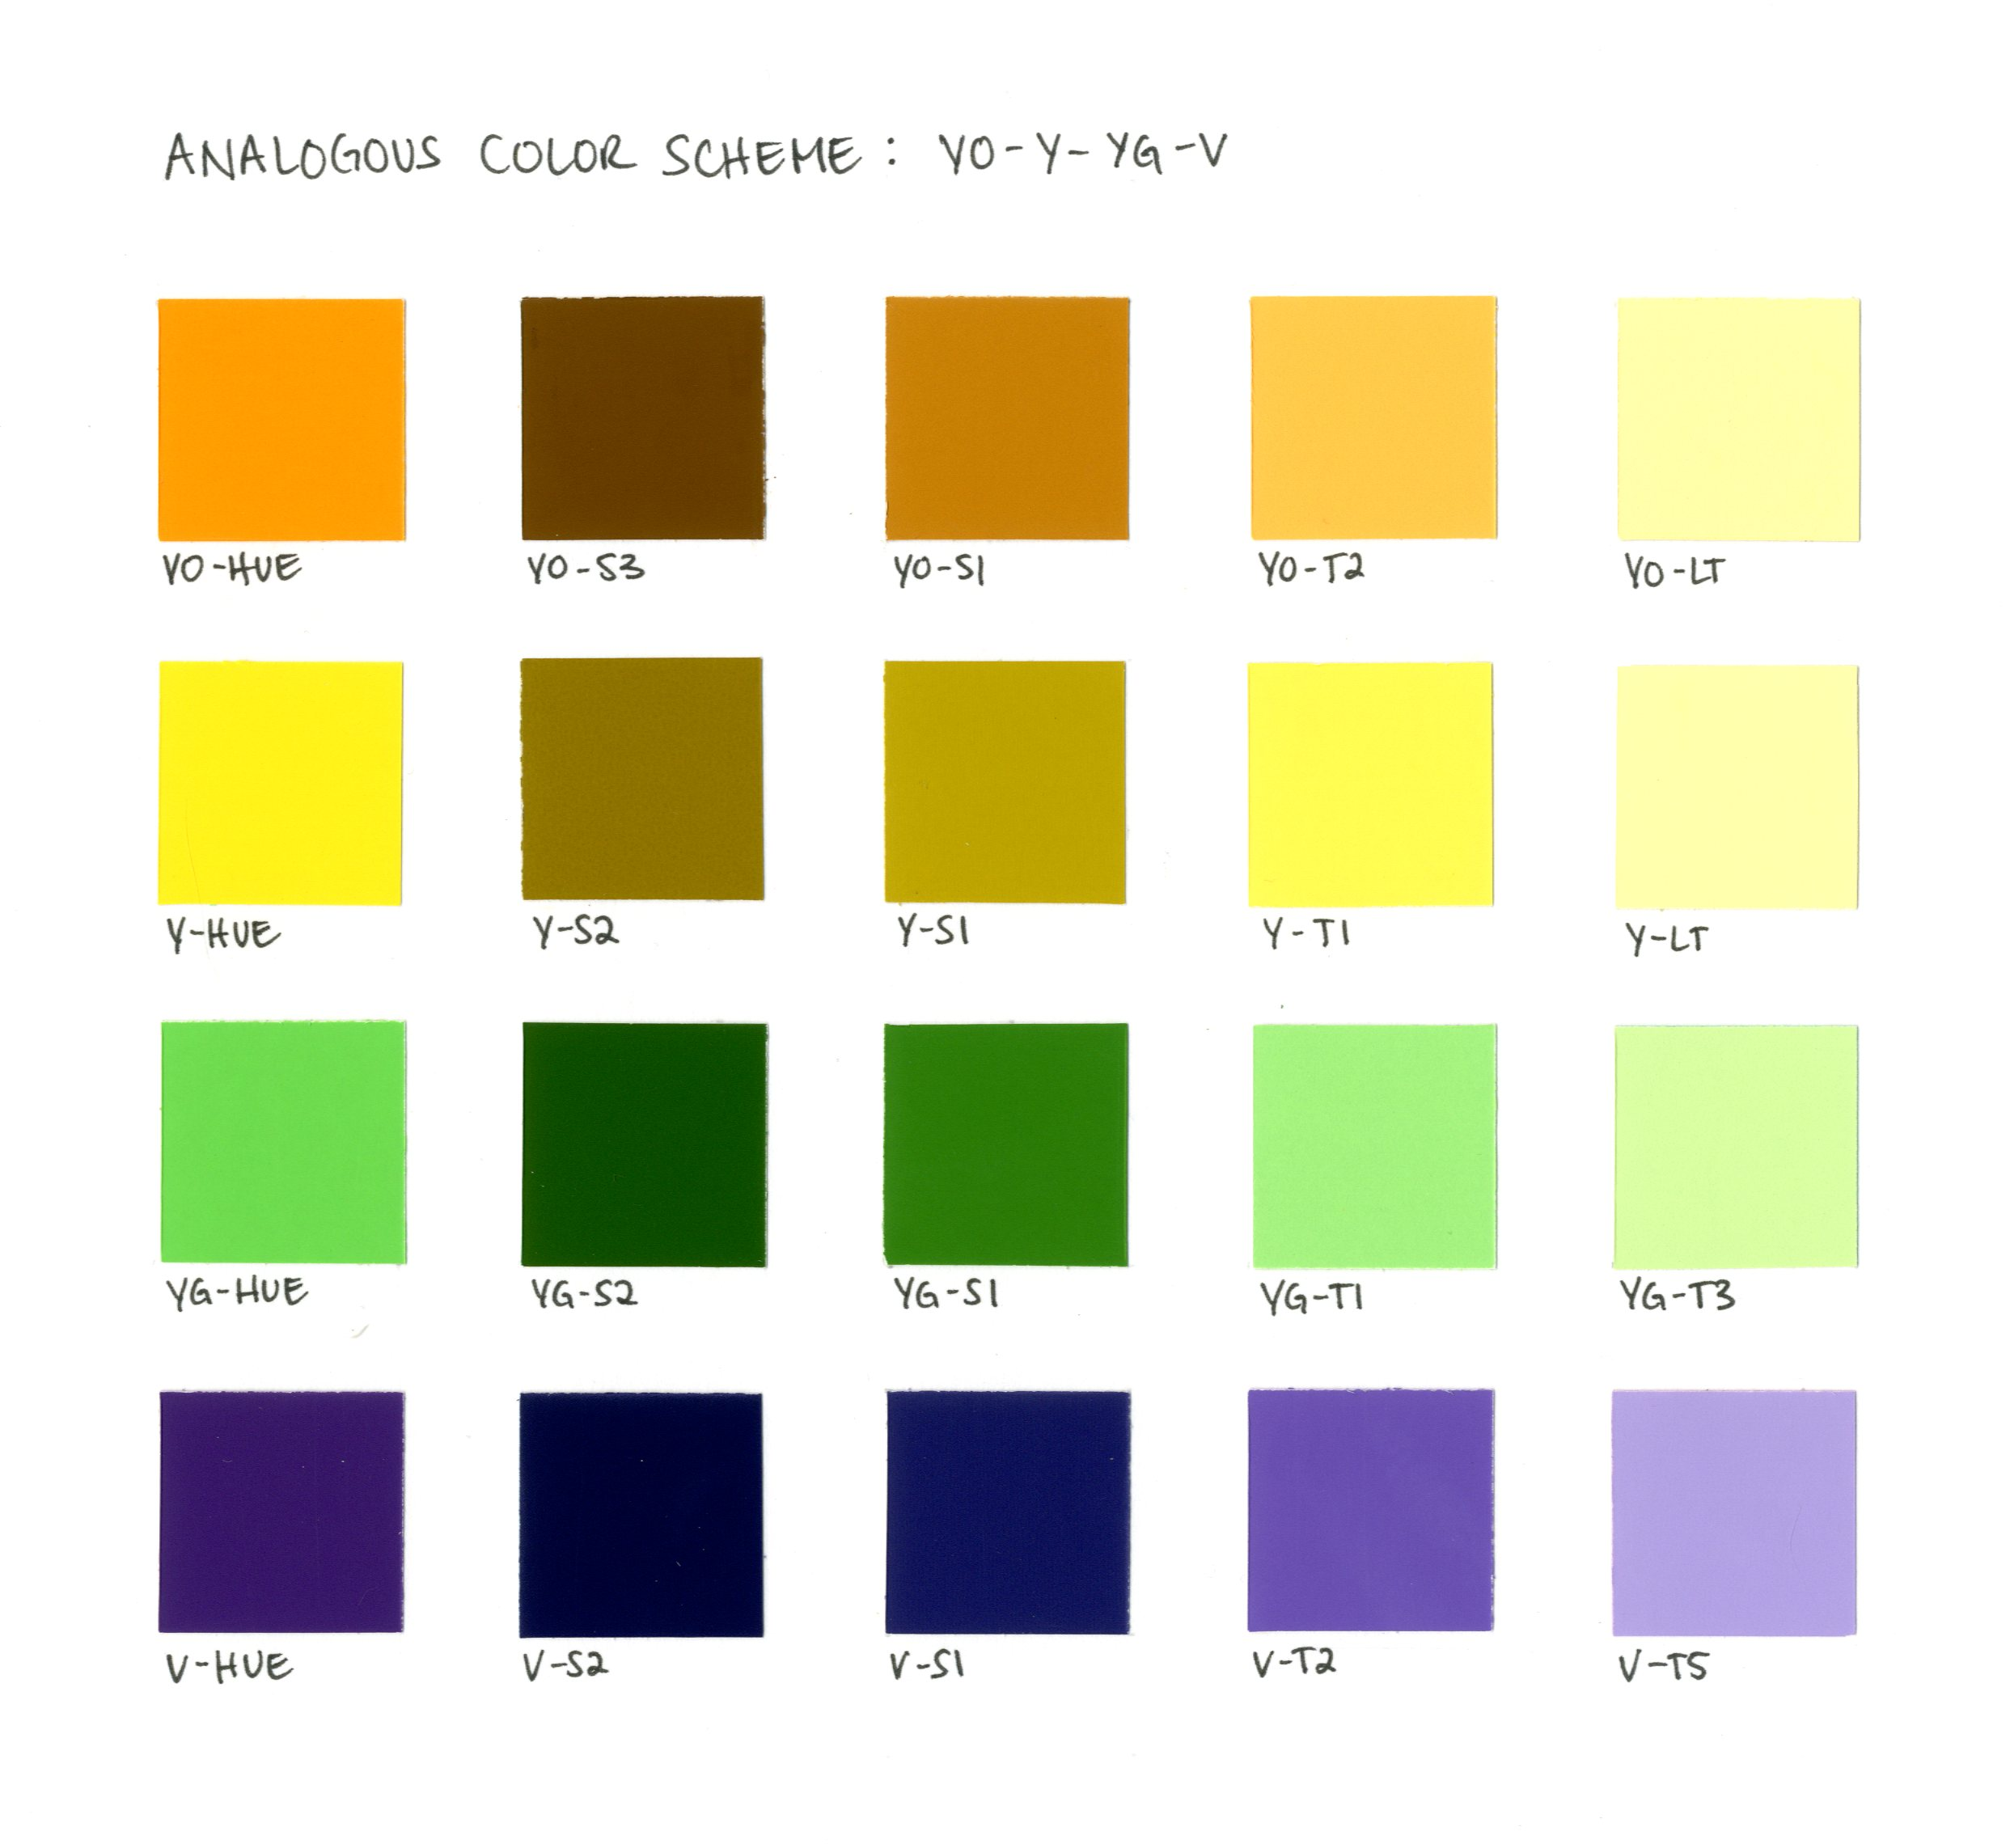 Analogous Color Combinations Driverlayer Search Engine Interiors Inside Ideas Interiors design about Everything [magnanprojects.com]